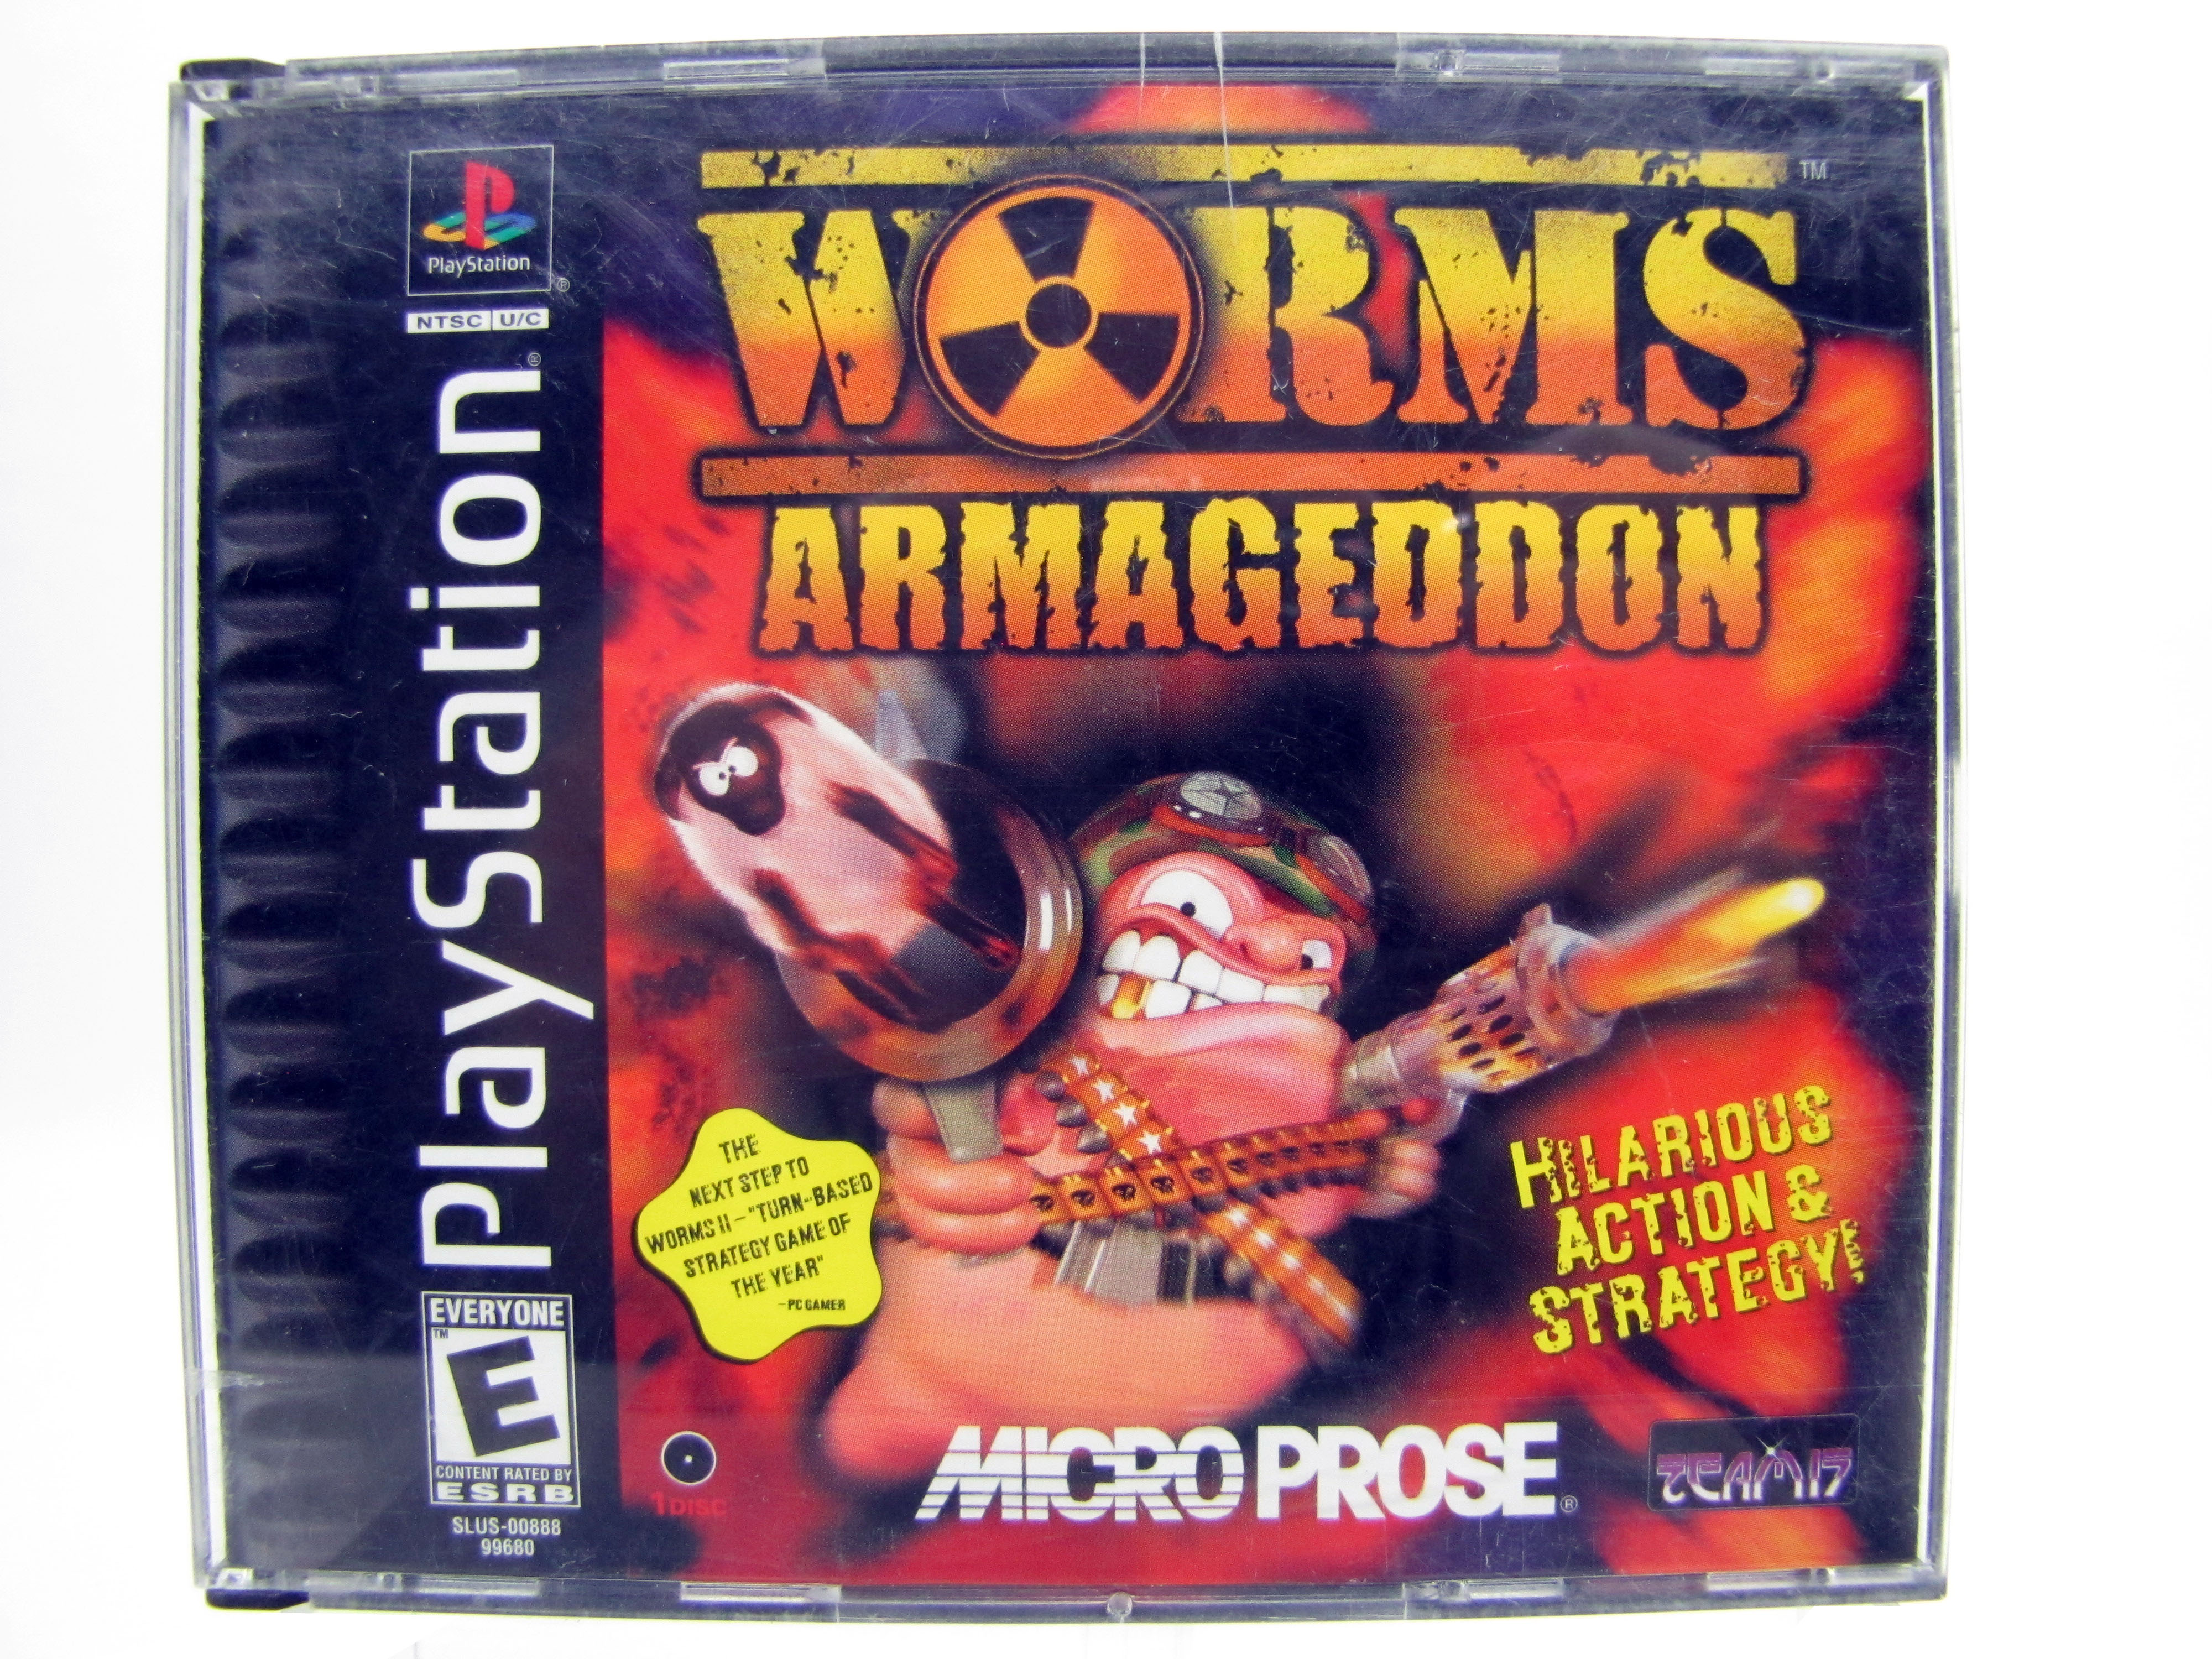 PS1 Worms: Armageddon Complete - 1999